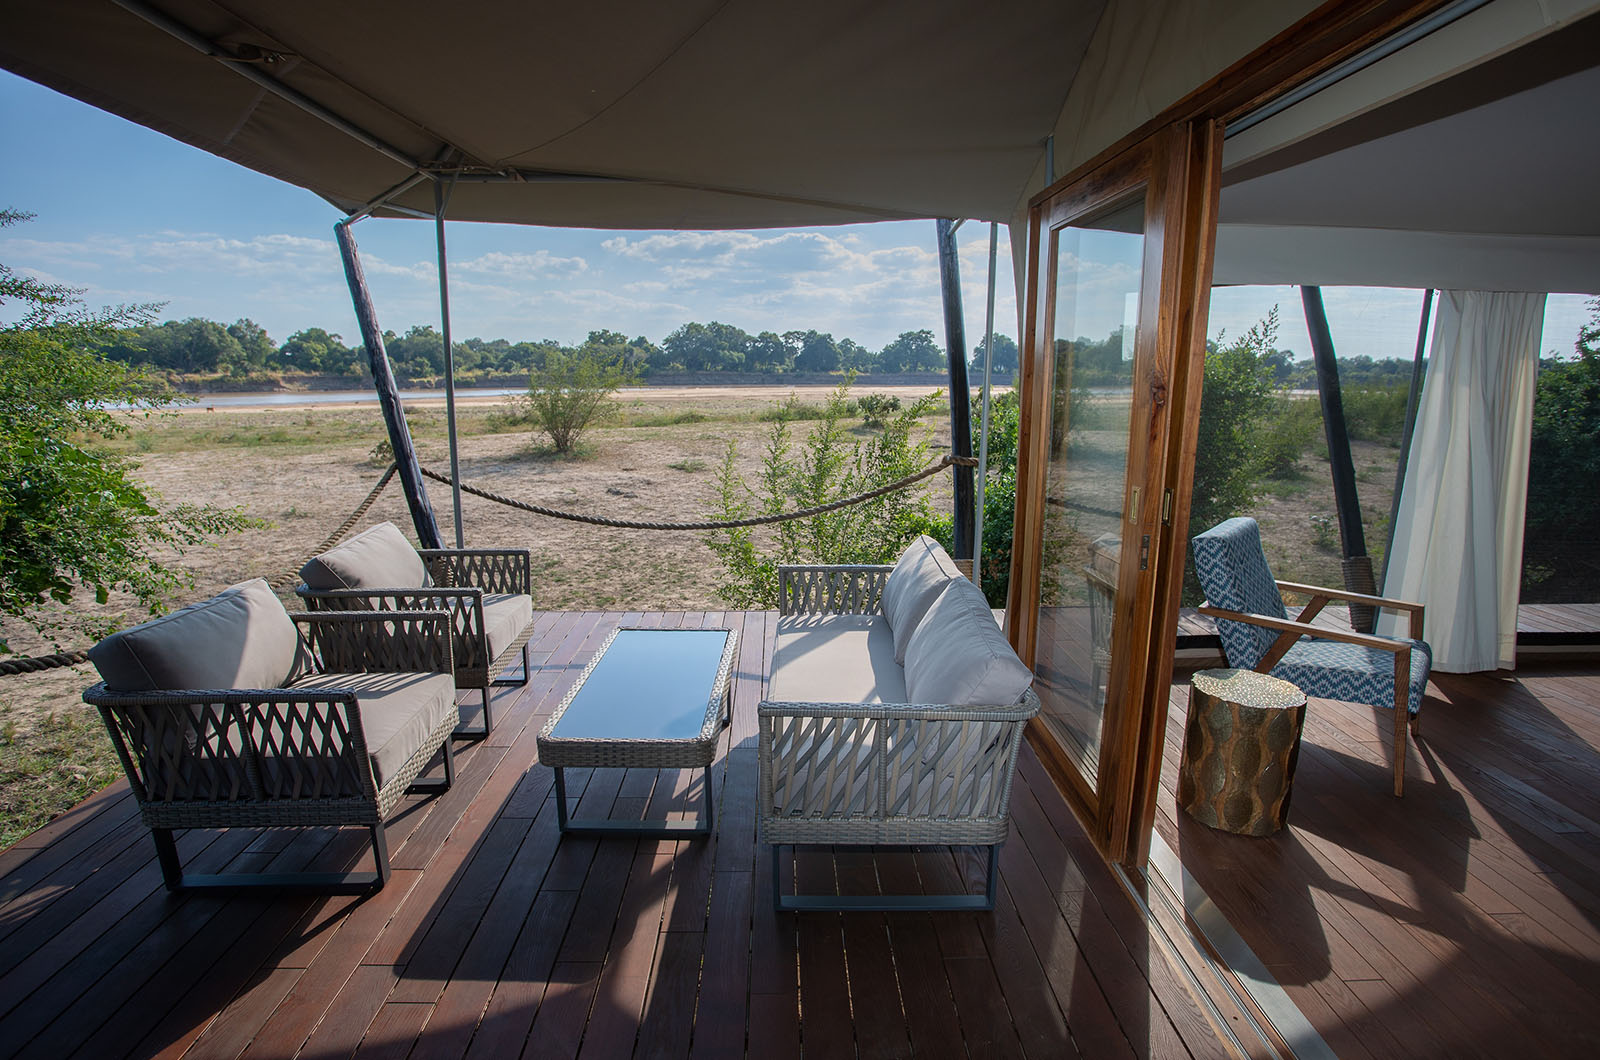 chikunto-lodge-zambia-in-style-safari-packages-lodges-luxury-tents-south-luangwa-views